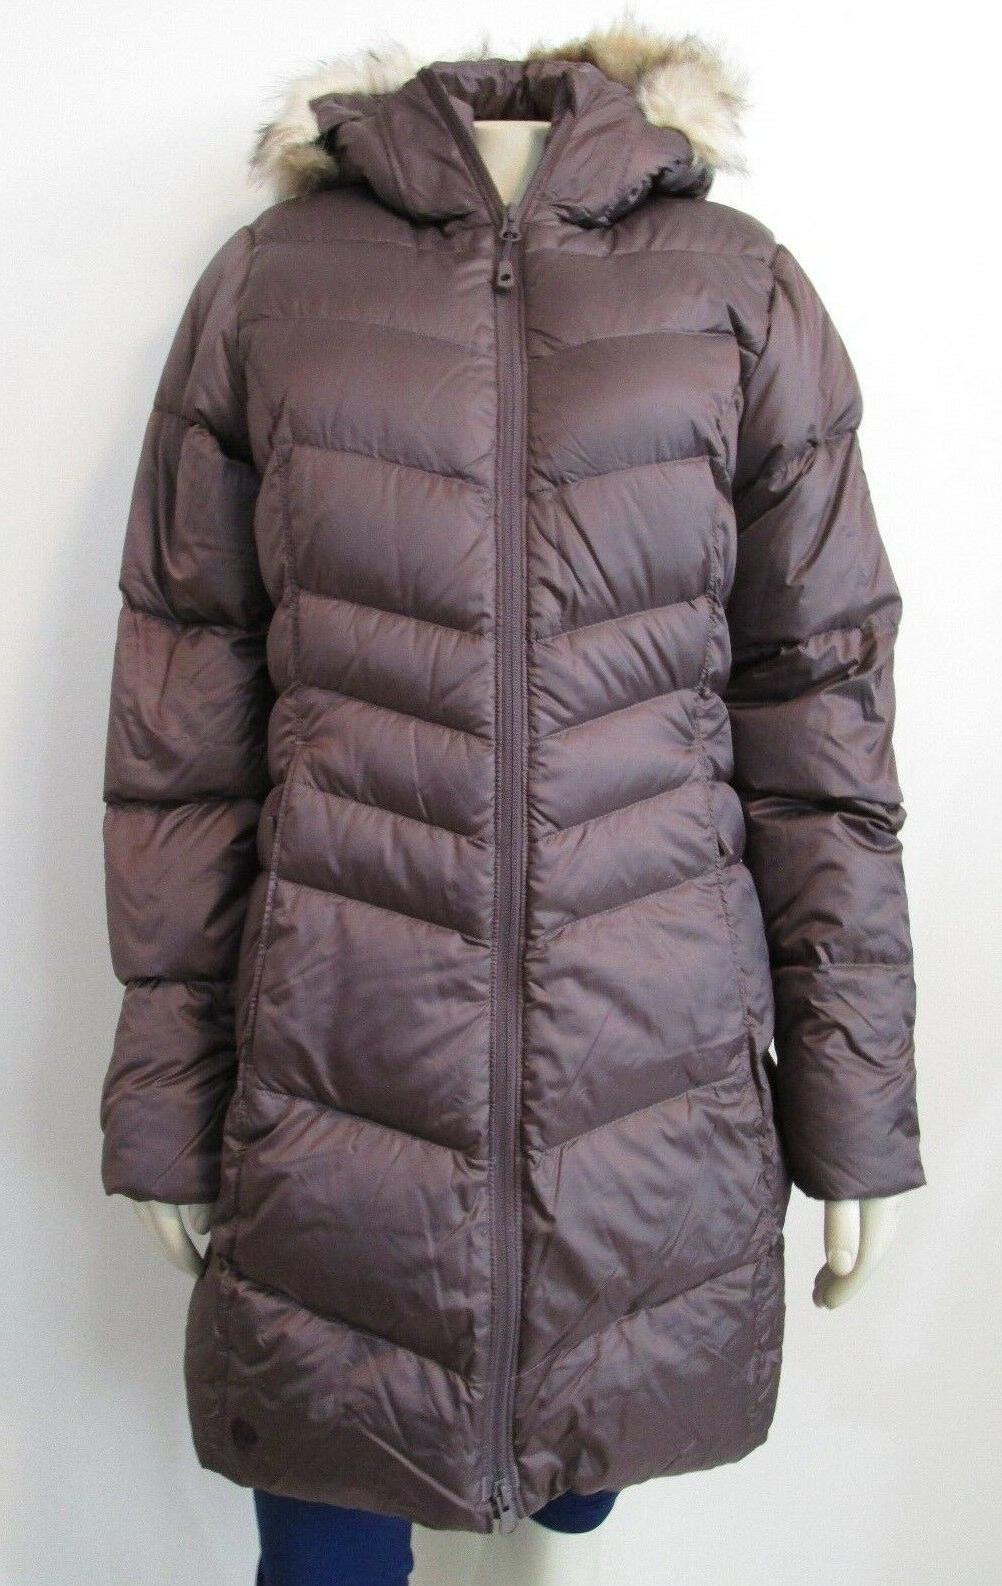 nwt womens downtown hooded down insulated jacket